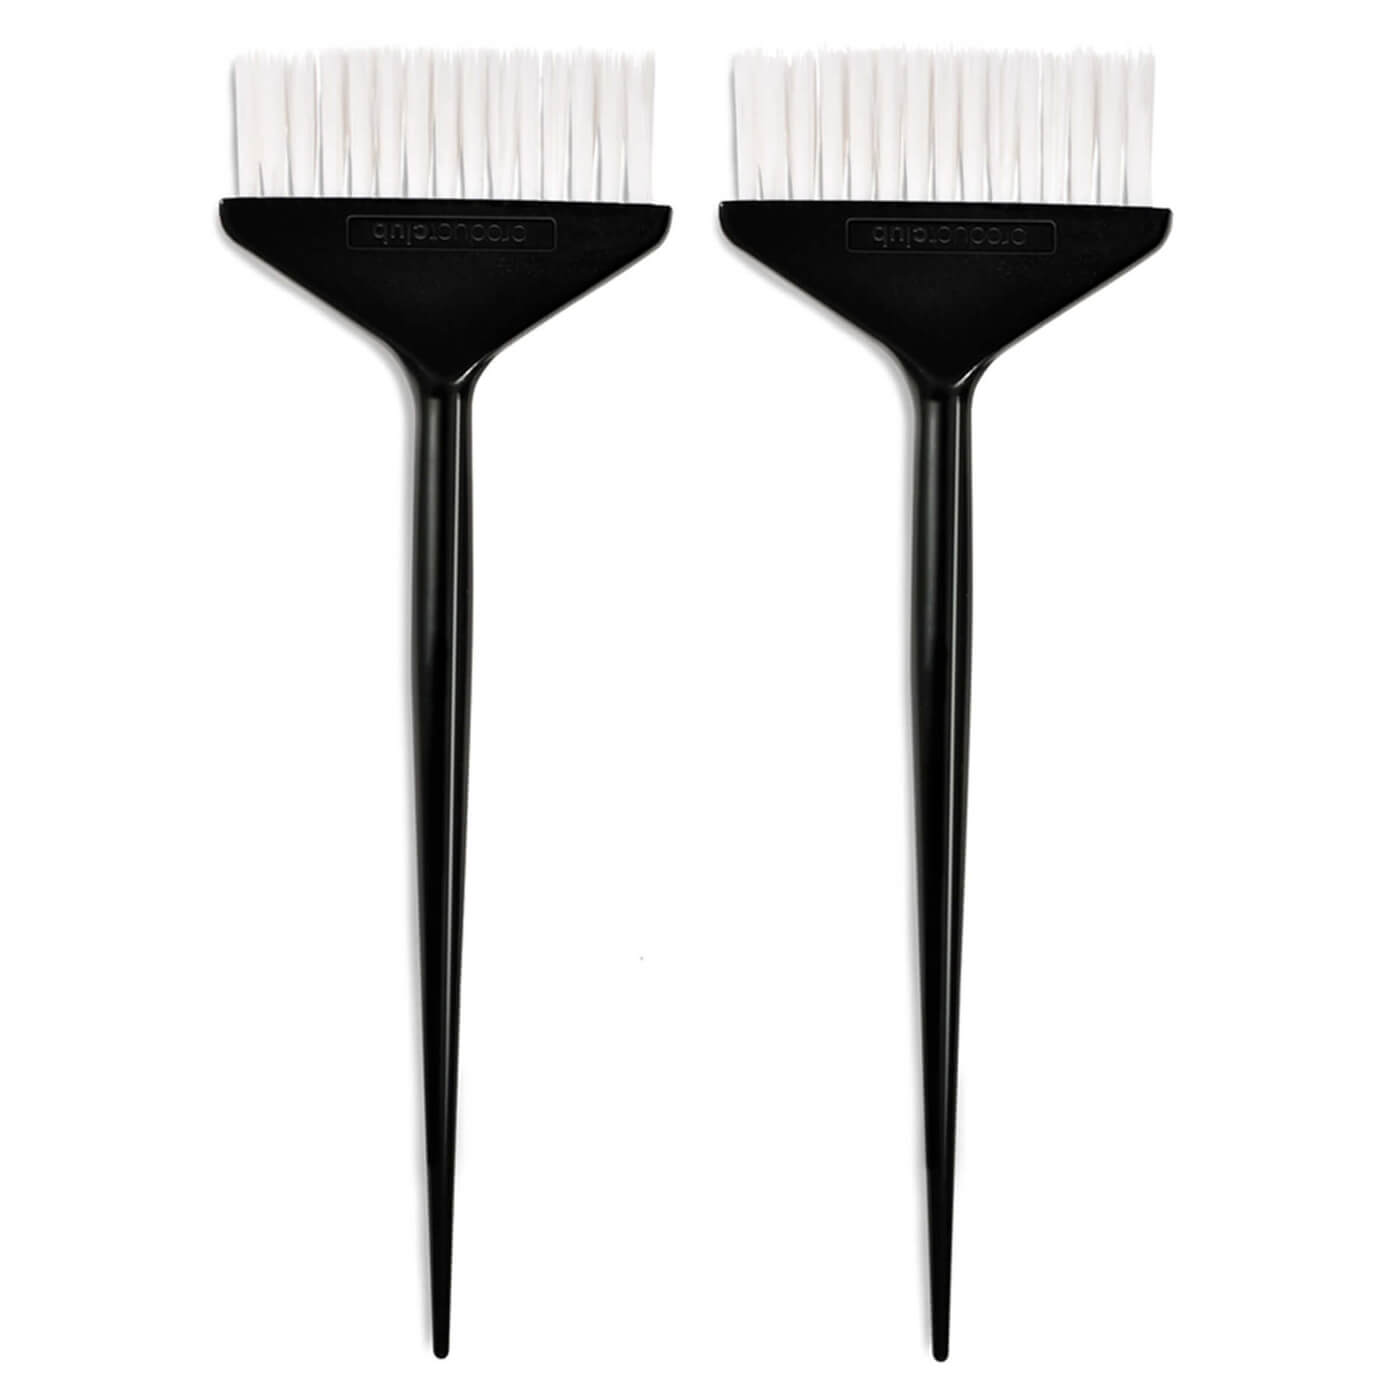 EWCB-2 Extra Wide Hair Dye Brush Root Tap